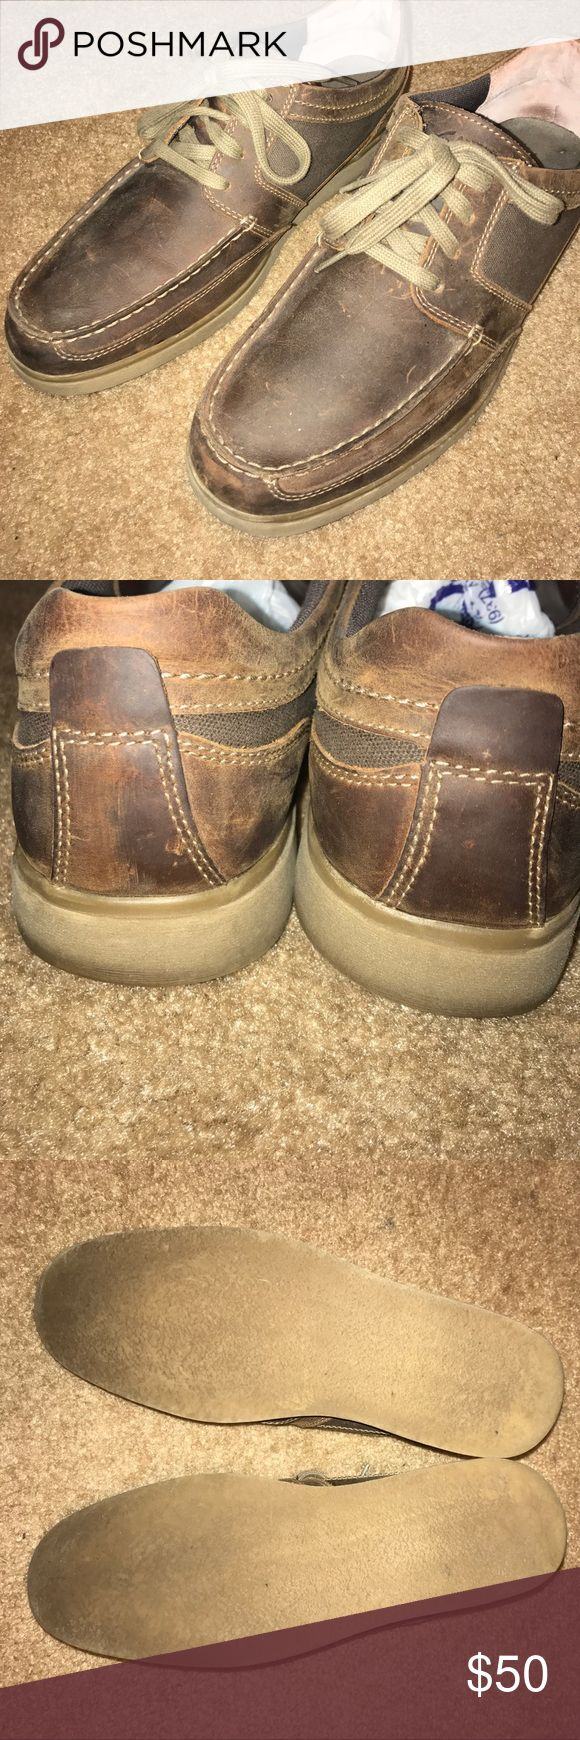 """Men's Clarks """"Brayer"""" shoes. EUC Men's Size 11. Clarks """"Brayer"""" style oxfords. Brown Leather and Canvas. Excellent Used Condition. Very few signs of wear. A few scuffs in the leather, but nothing effecting the appearance. Clarks Shoes Oxfords & Derbys"""